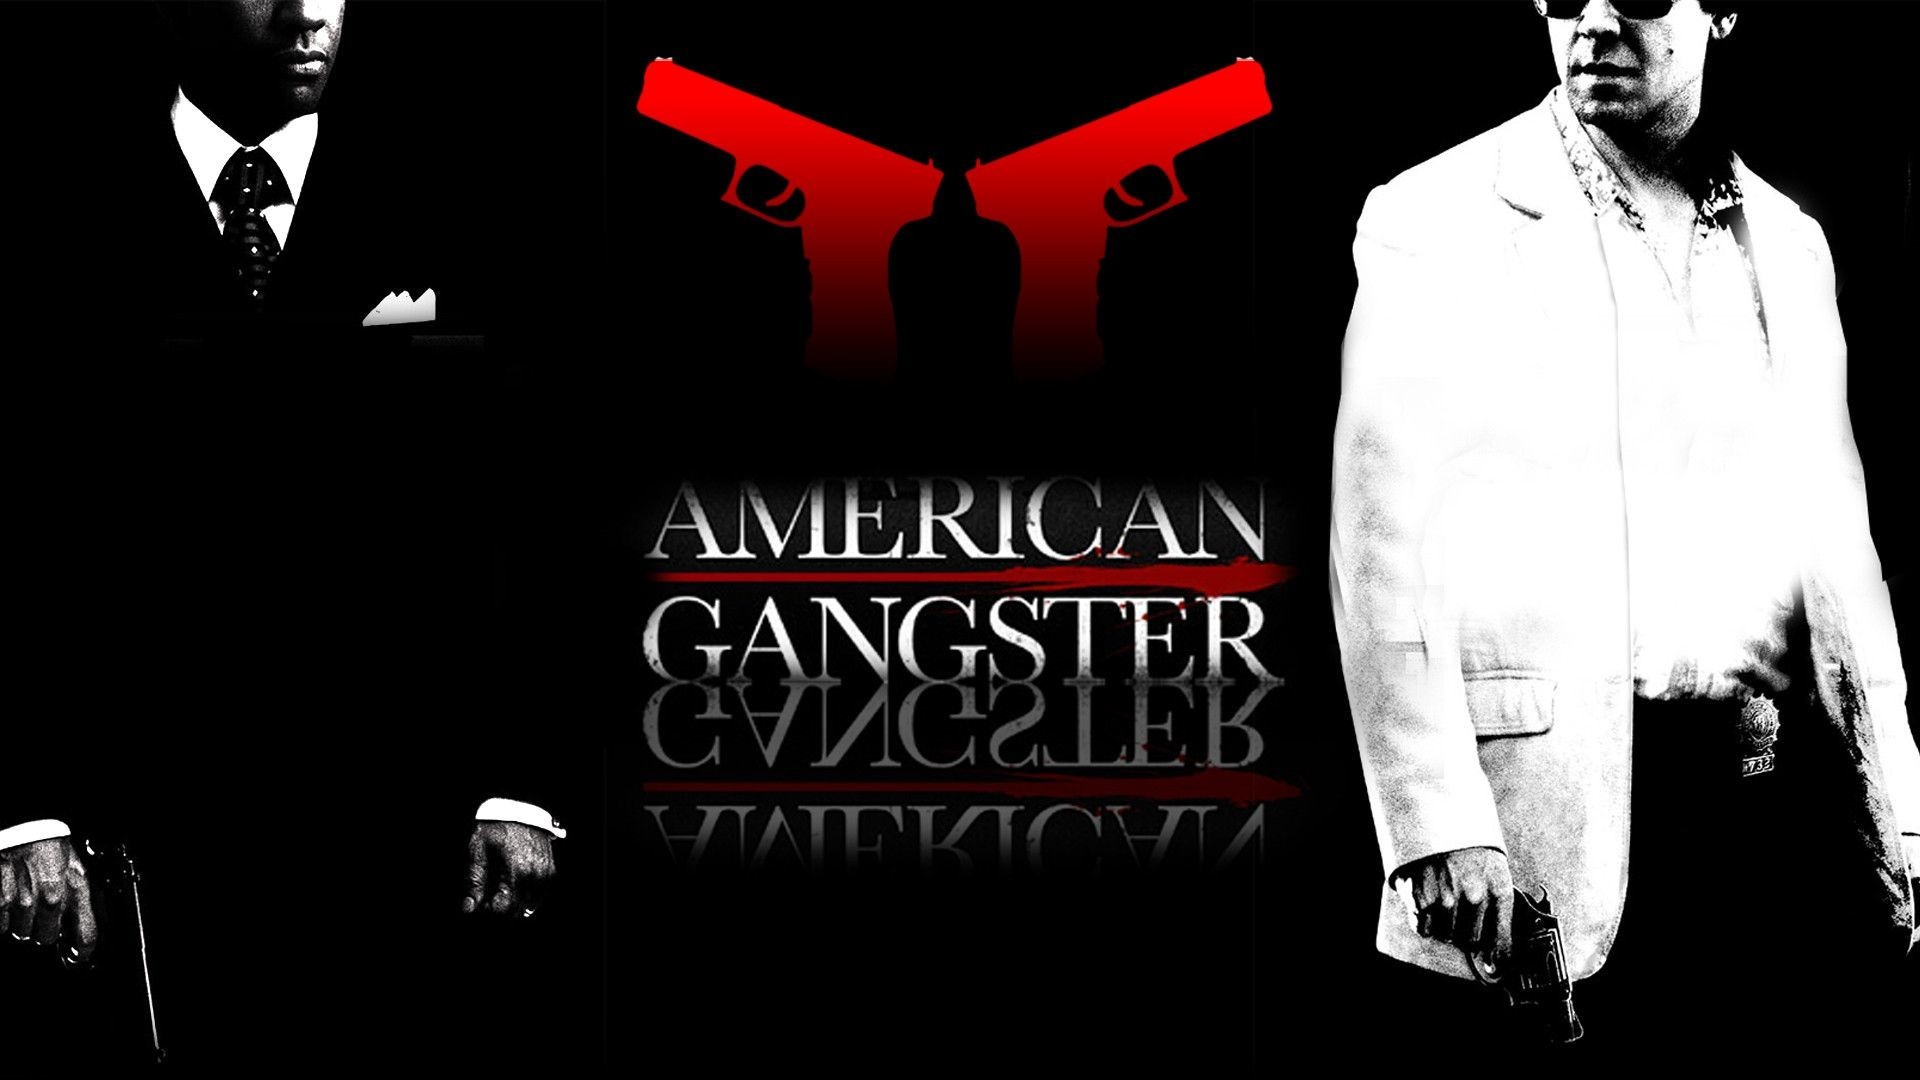 1920x1080 1920x1080 American Gangster · Download · Standard .